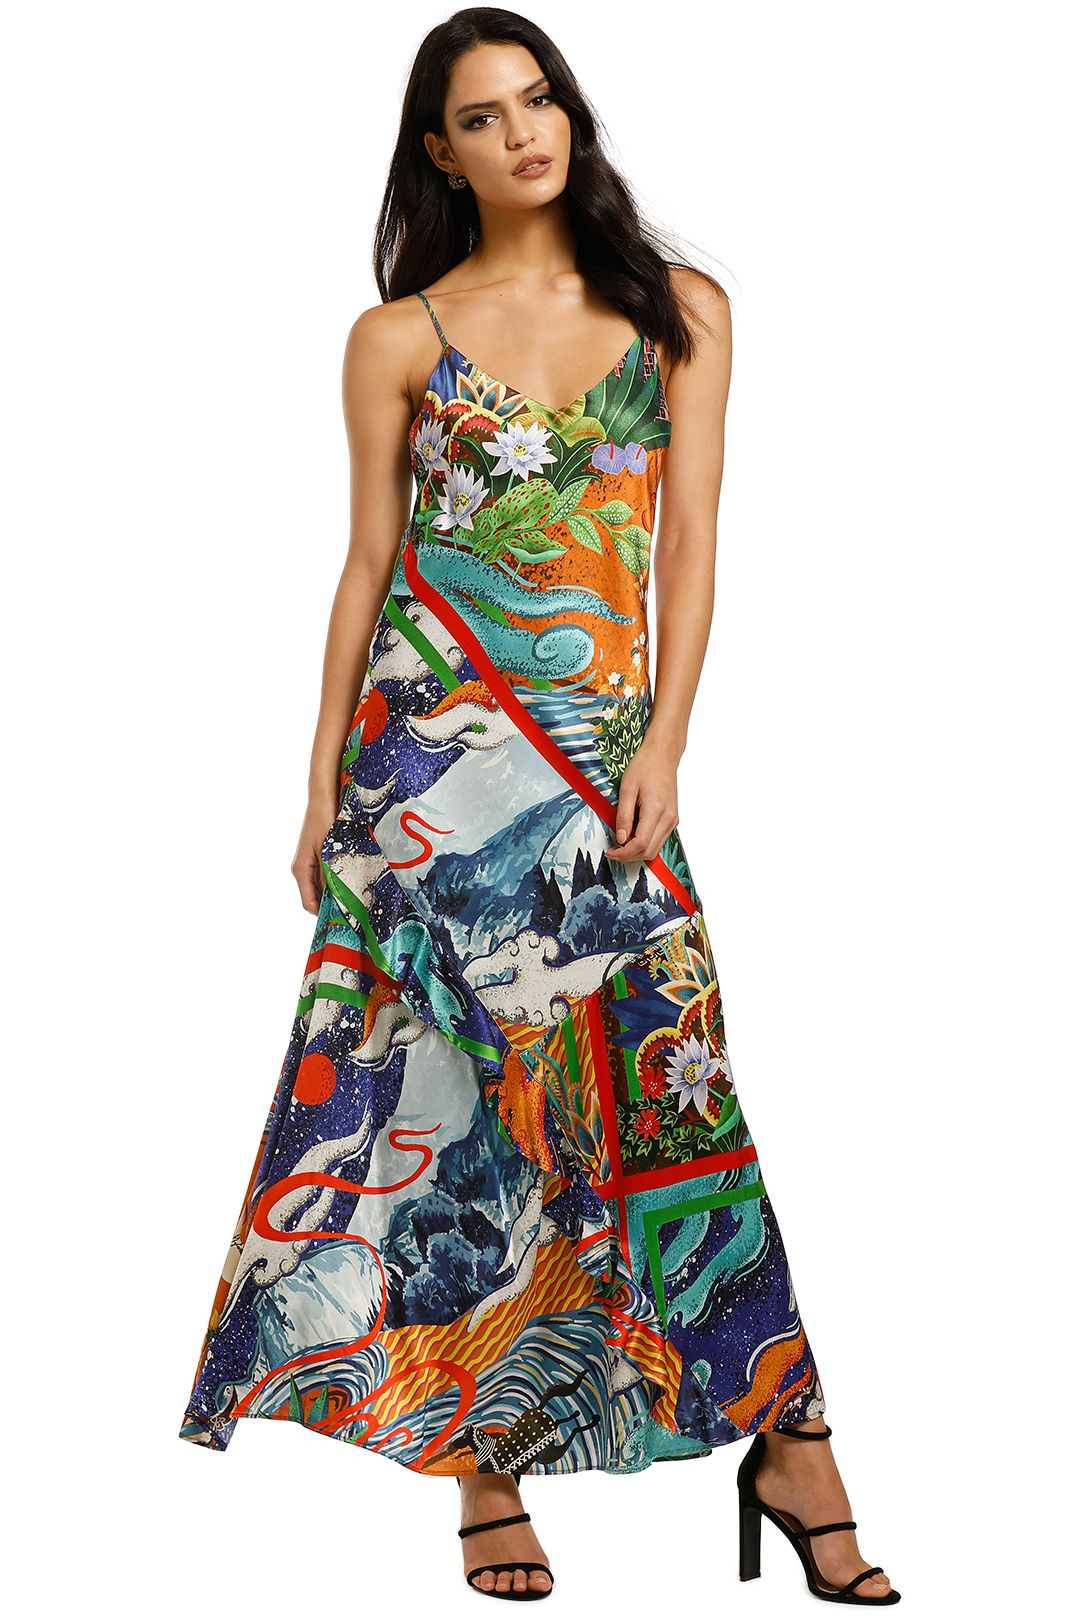 Cooper-By-Trelise-Cooper-Dress-To-Impress-Silkway-Gazing-Front